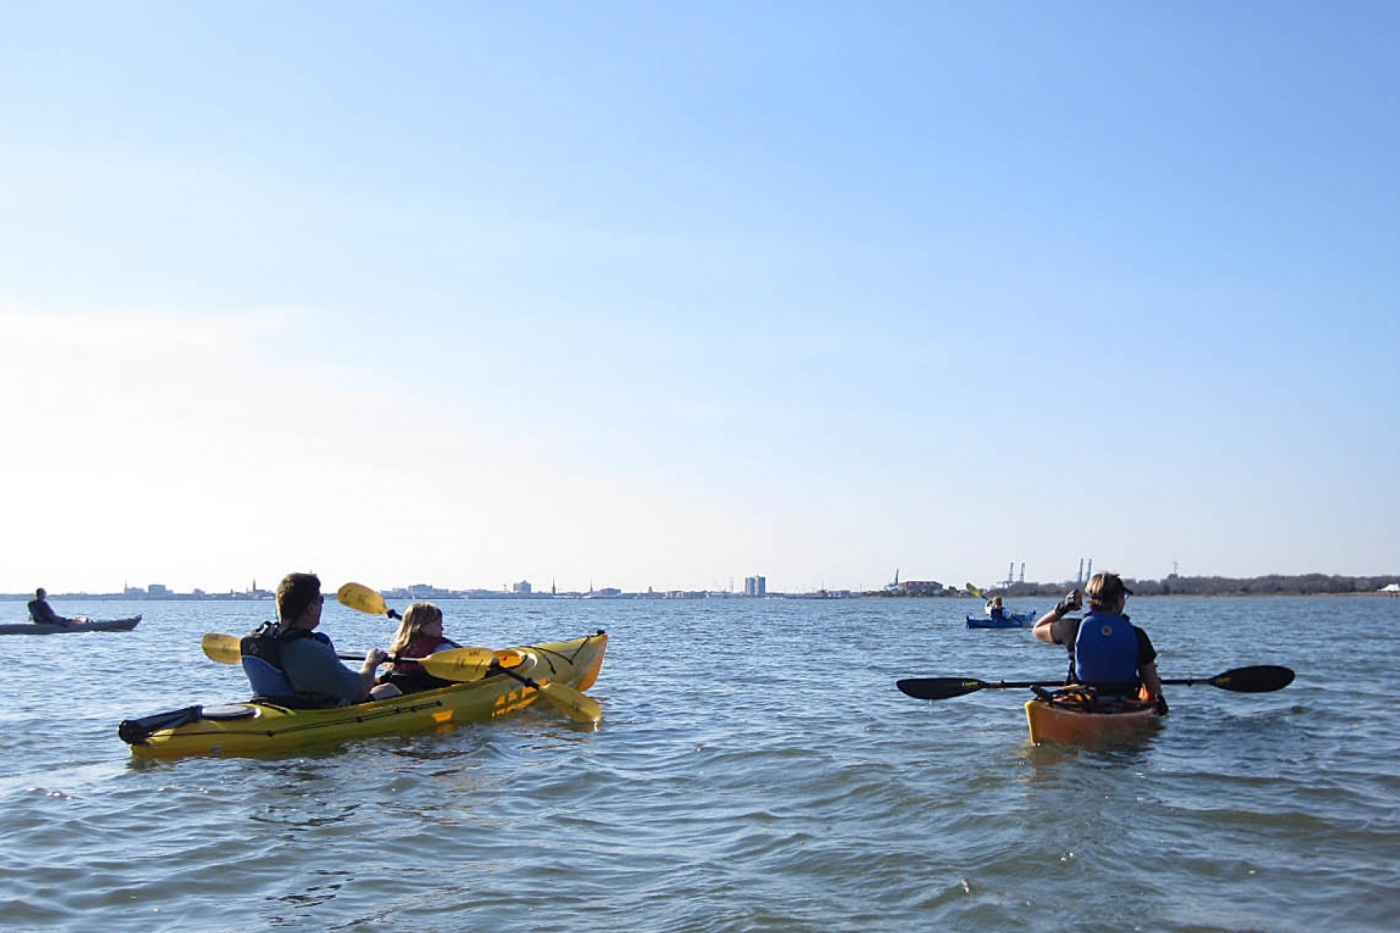 Spend the day on the water with Mount Pleasant's array of activities including kayaking, canoeing, paddleboarding and more!